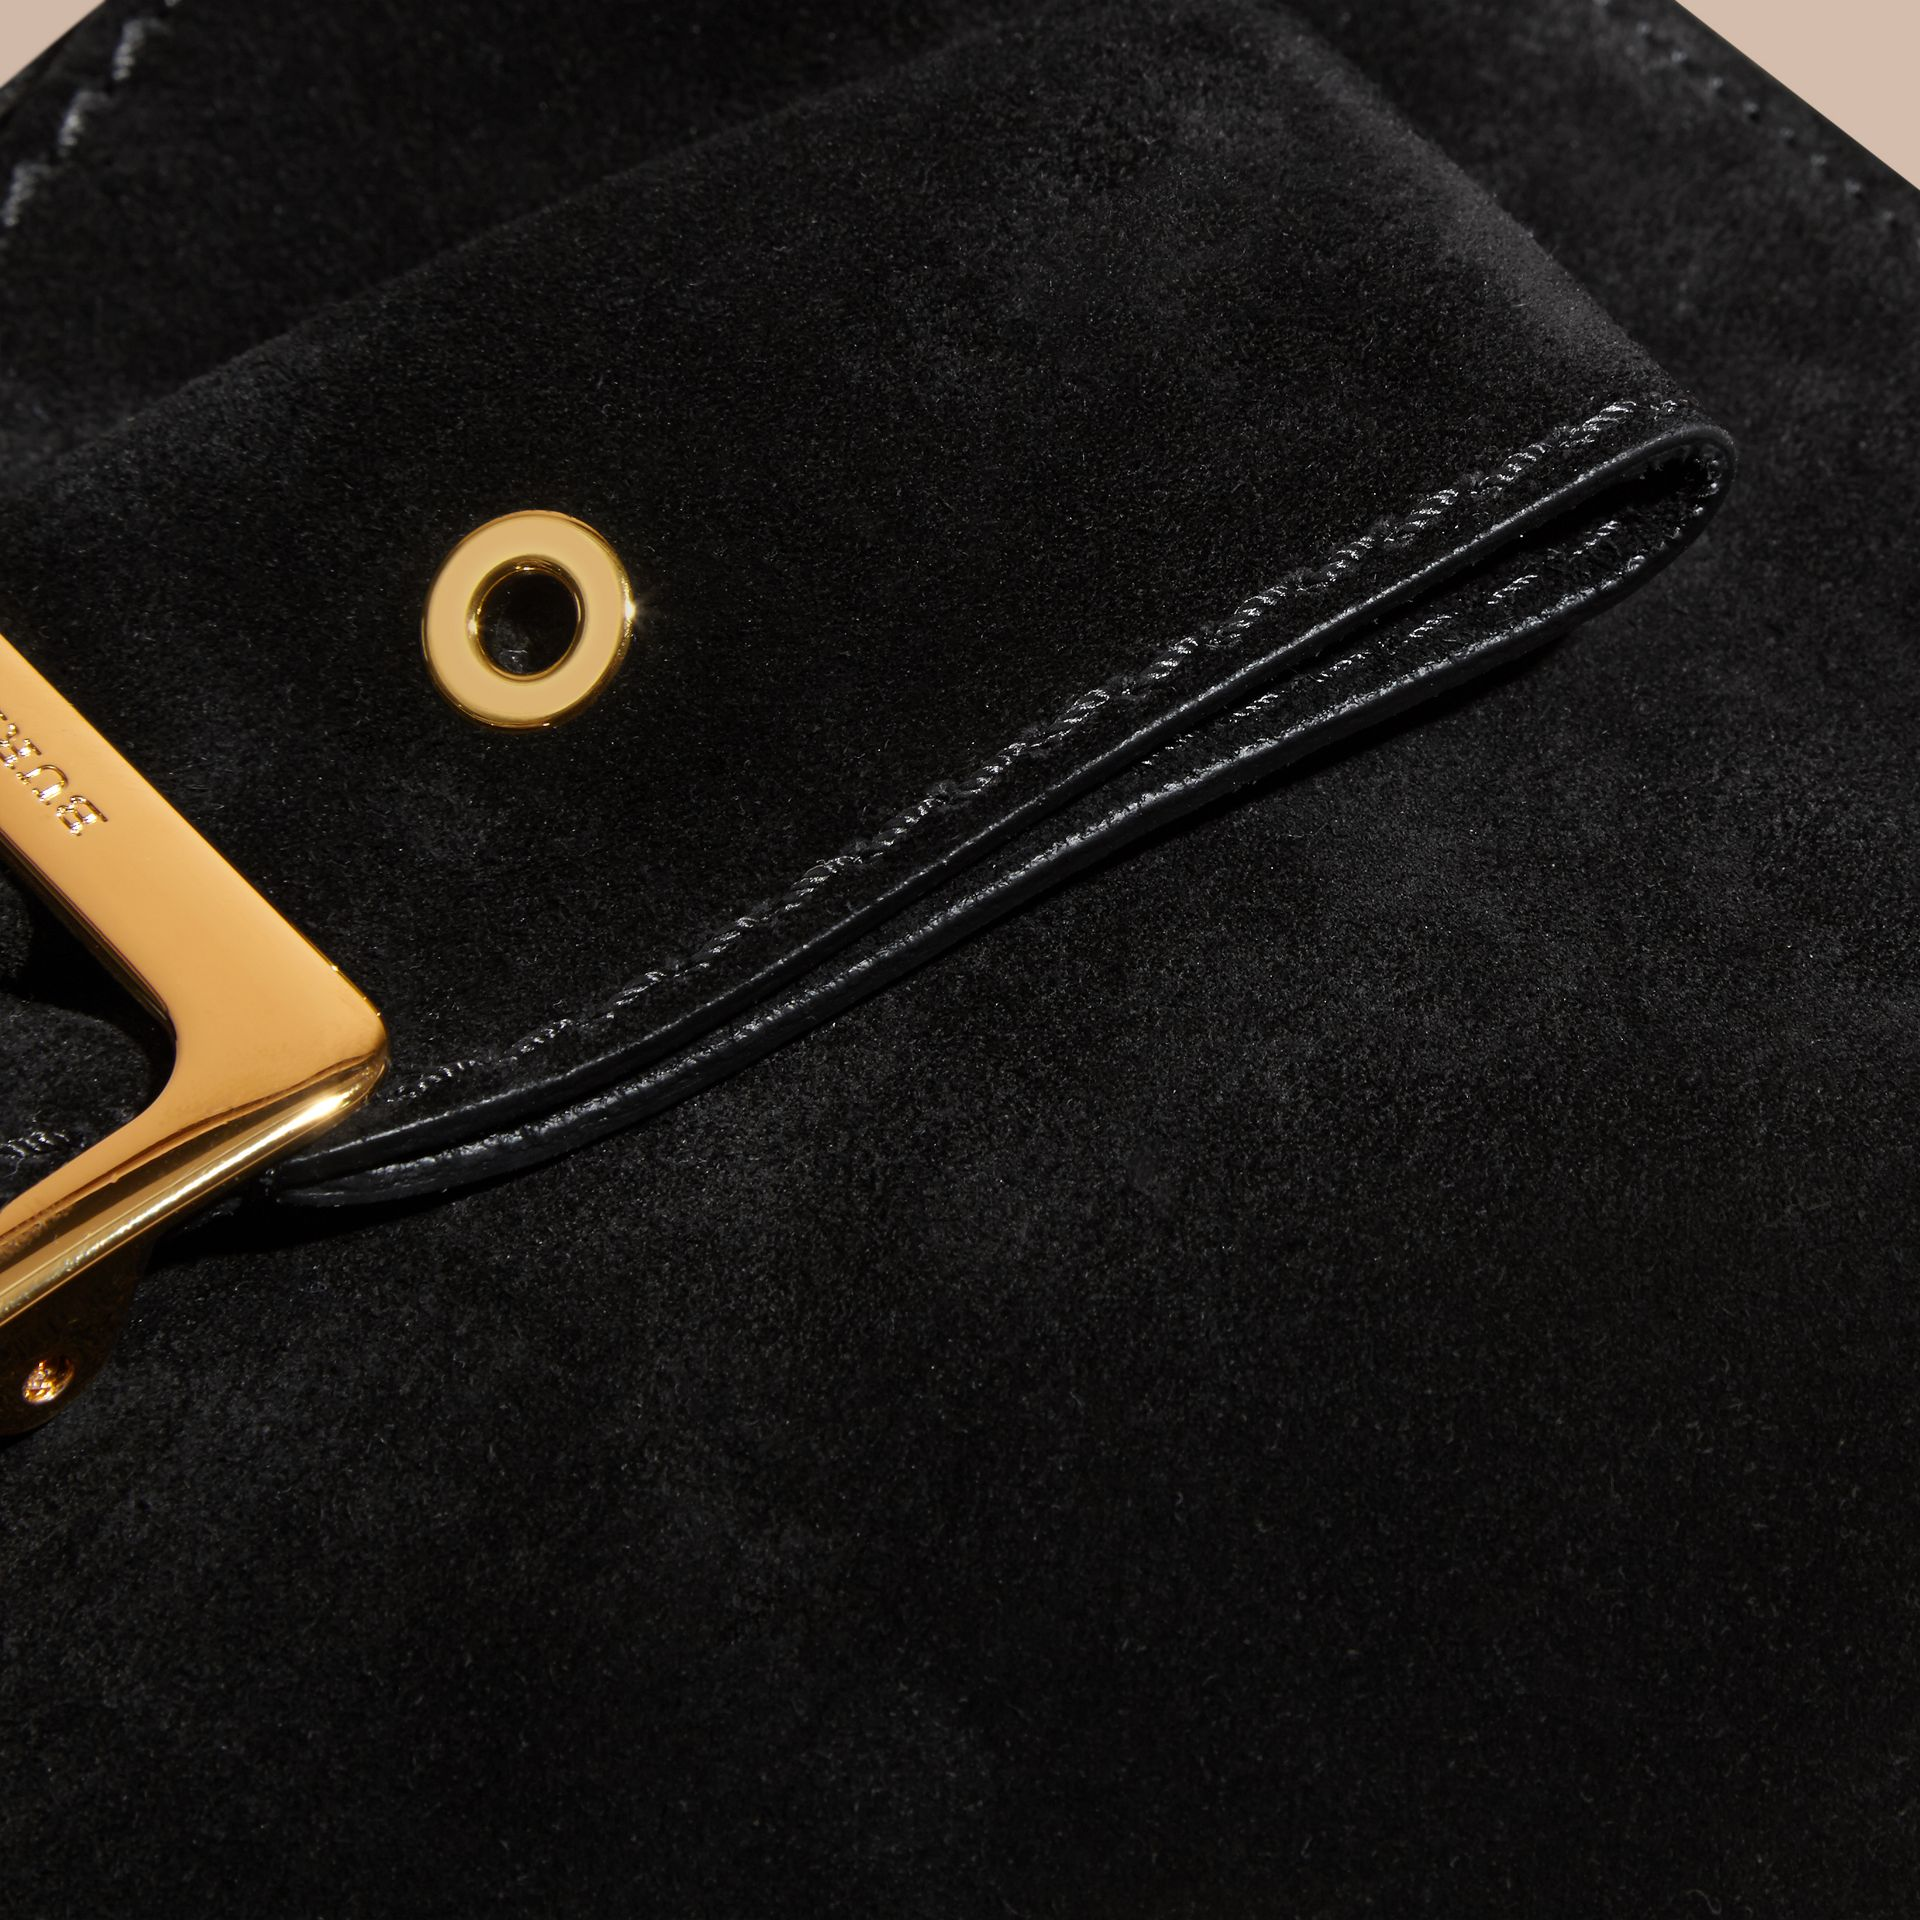 Black Suede Clutch Bag with Buckled Bow Detail Black - gallery image 2